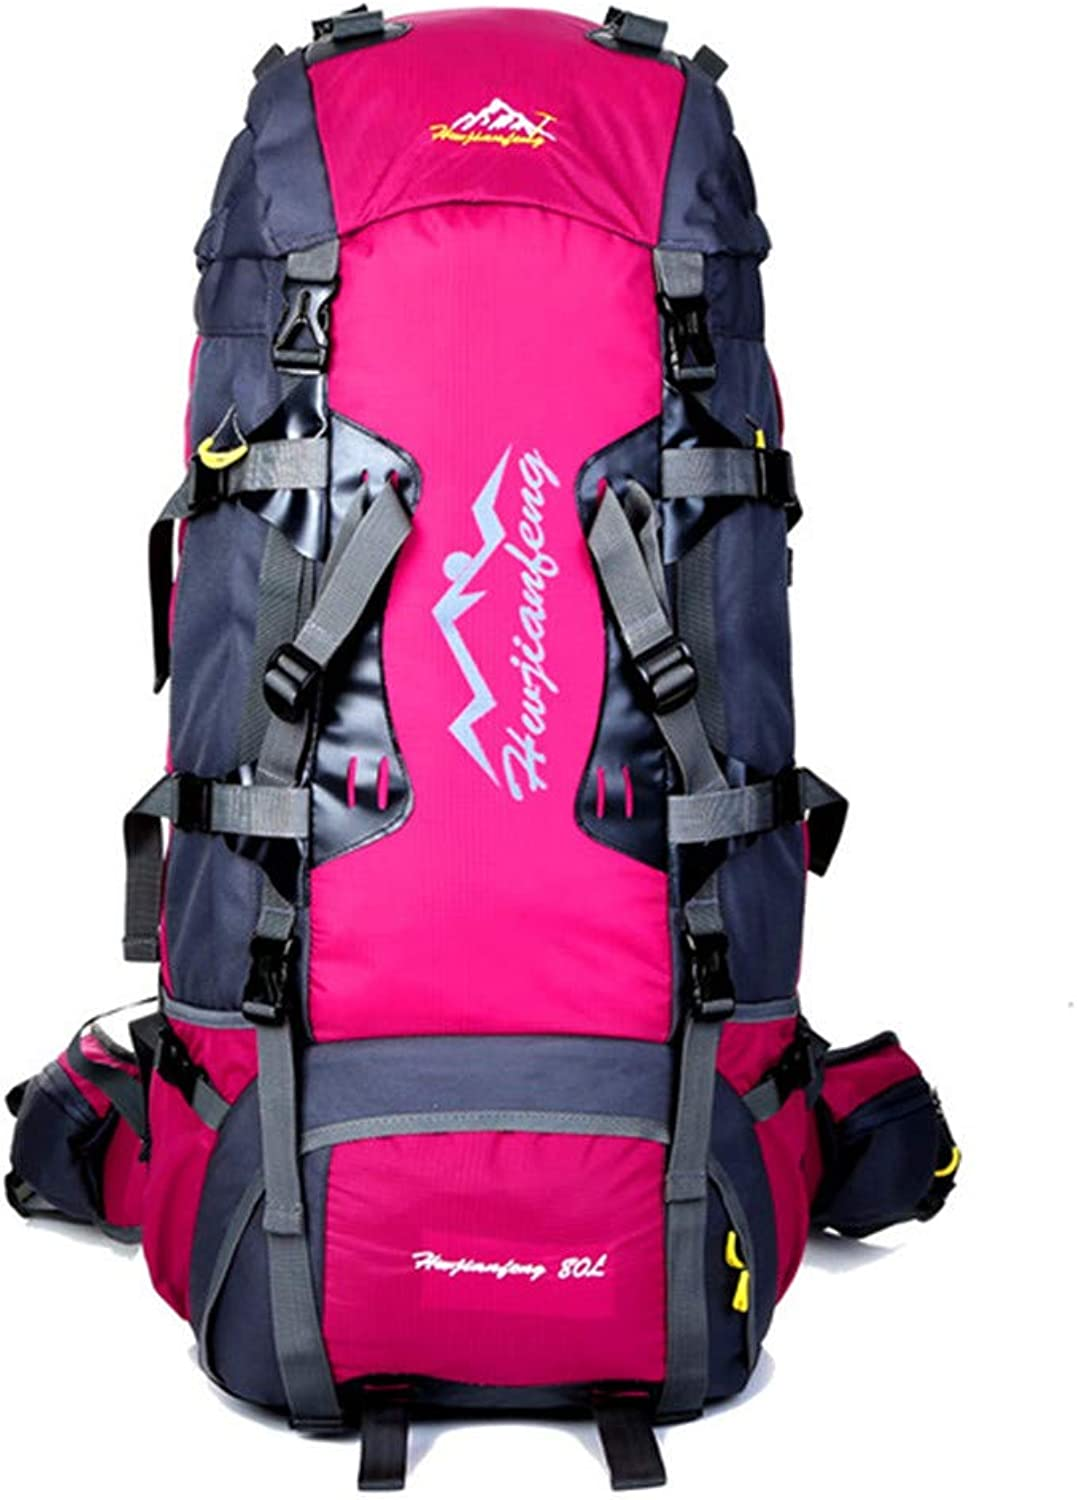 Hiking Backpack, 80L Large Outdoor Camping Hiking Backpack Unisex Waterproof